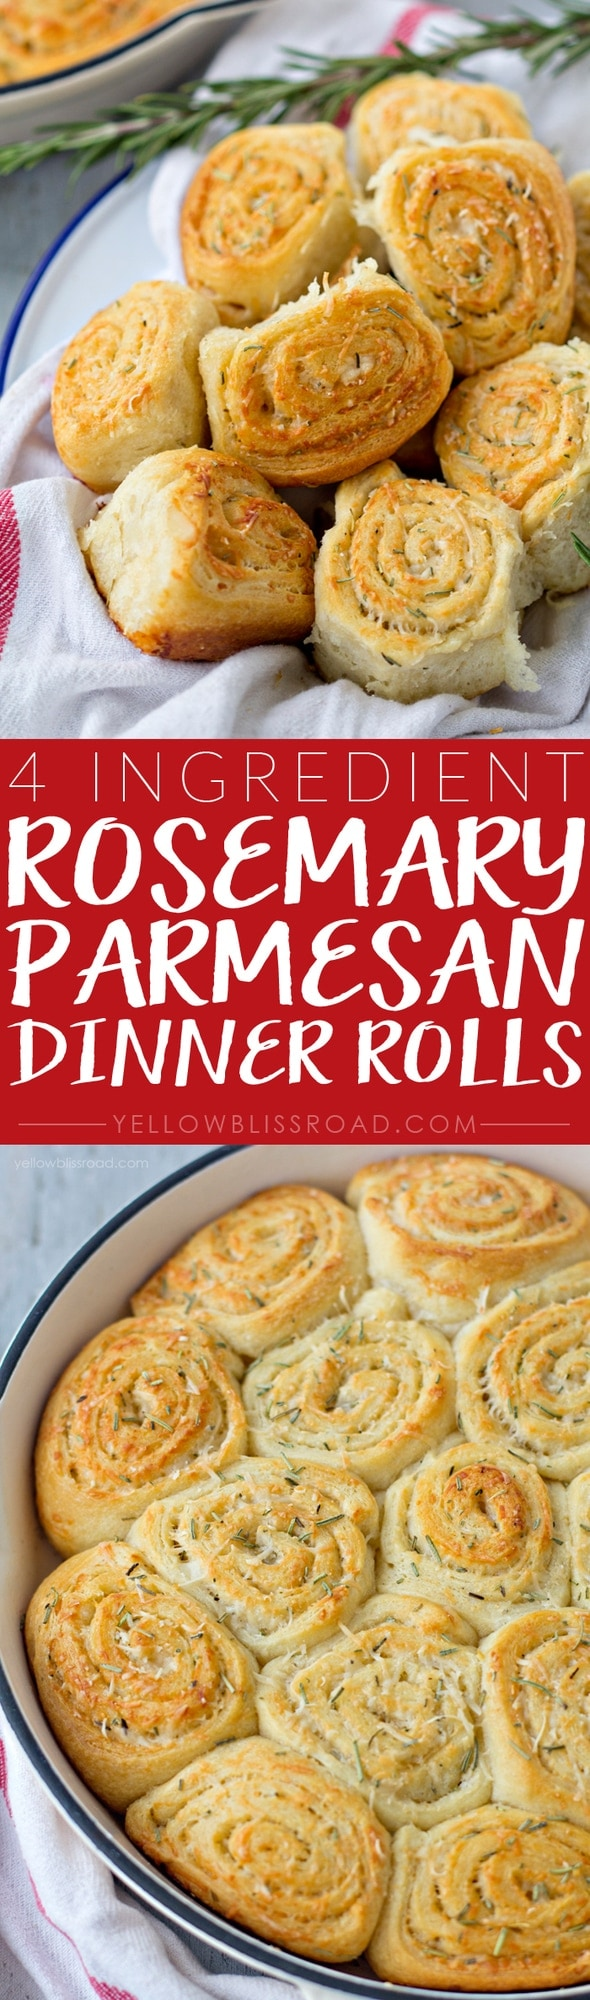 4 Ingredient Garlic Parmesan Rosemary Dinner Rolls made easy with Pillsbury Crescents